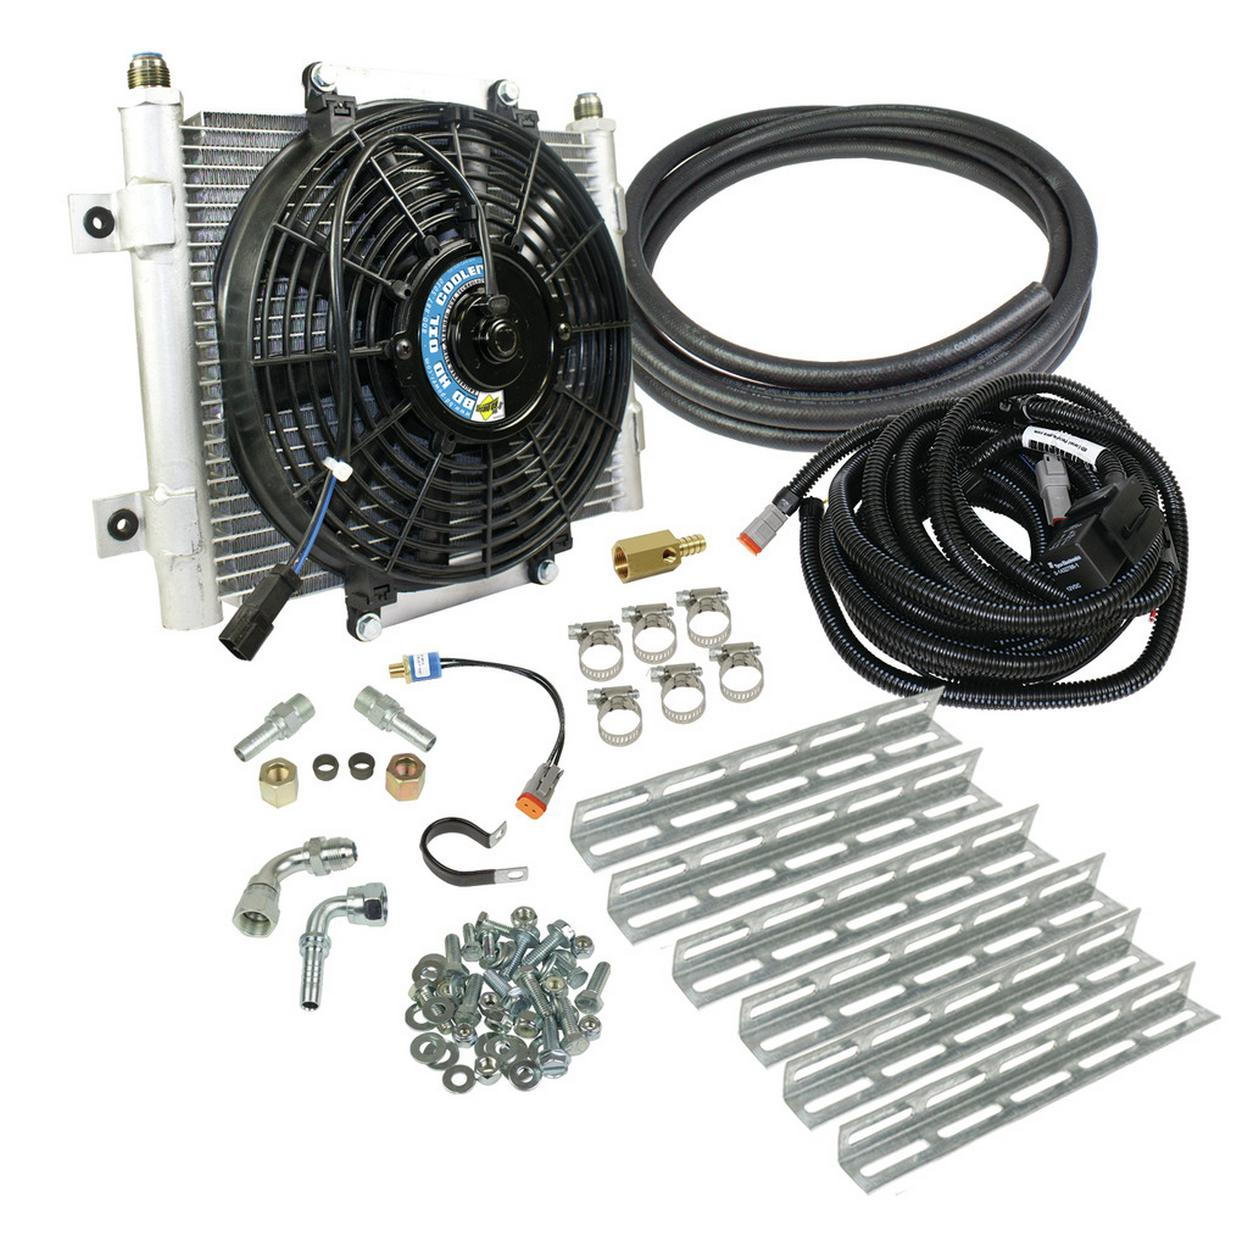 BD Xtrude Transmission Cooler with Fan - Complete Kit 1/2in Lines